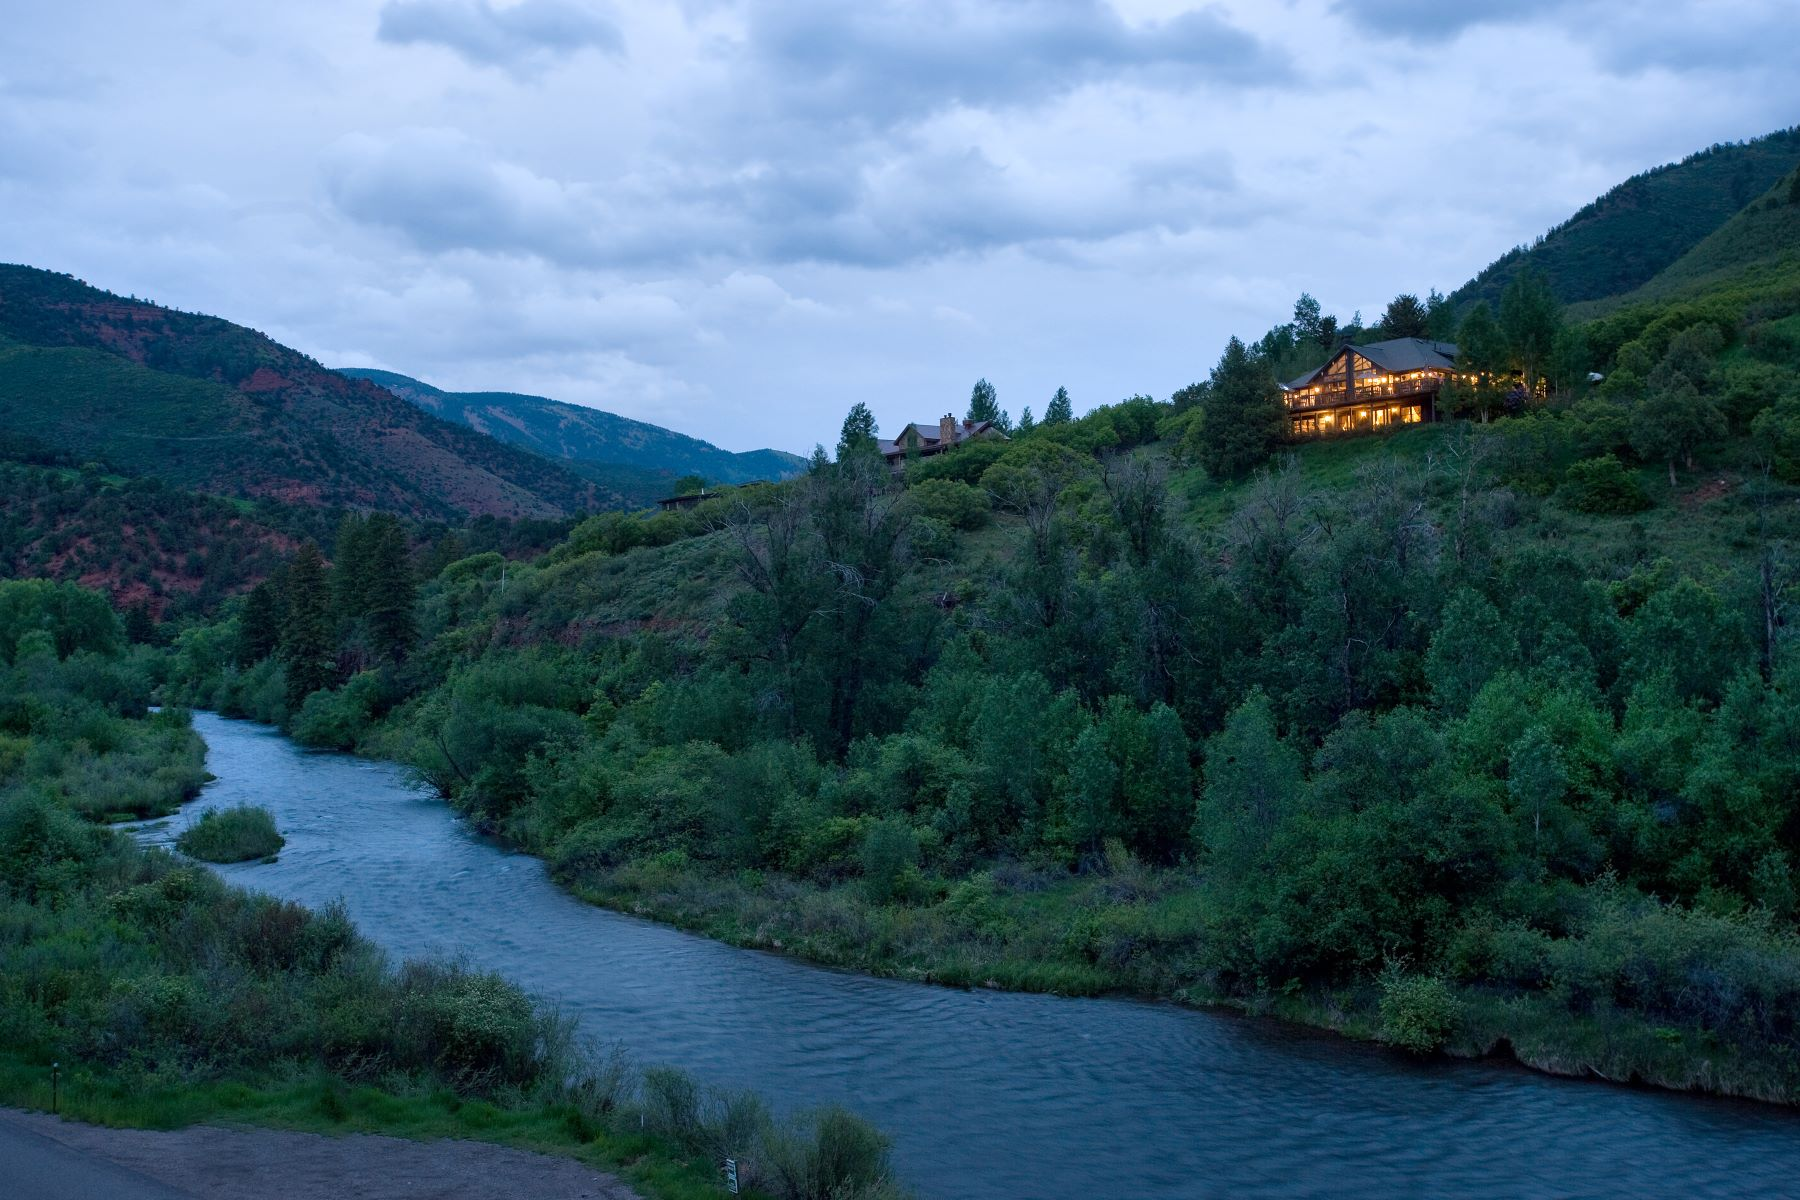 Single Family Homes for Sale at Located on the Frying Pan River 403 Big Hat Road Basalt, Colorado 81621 United States